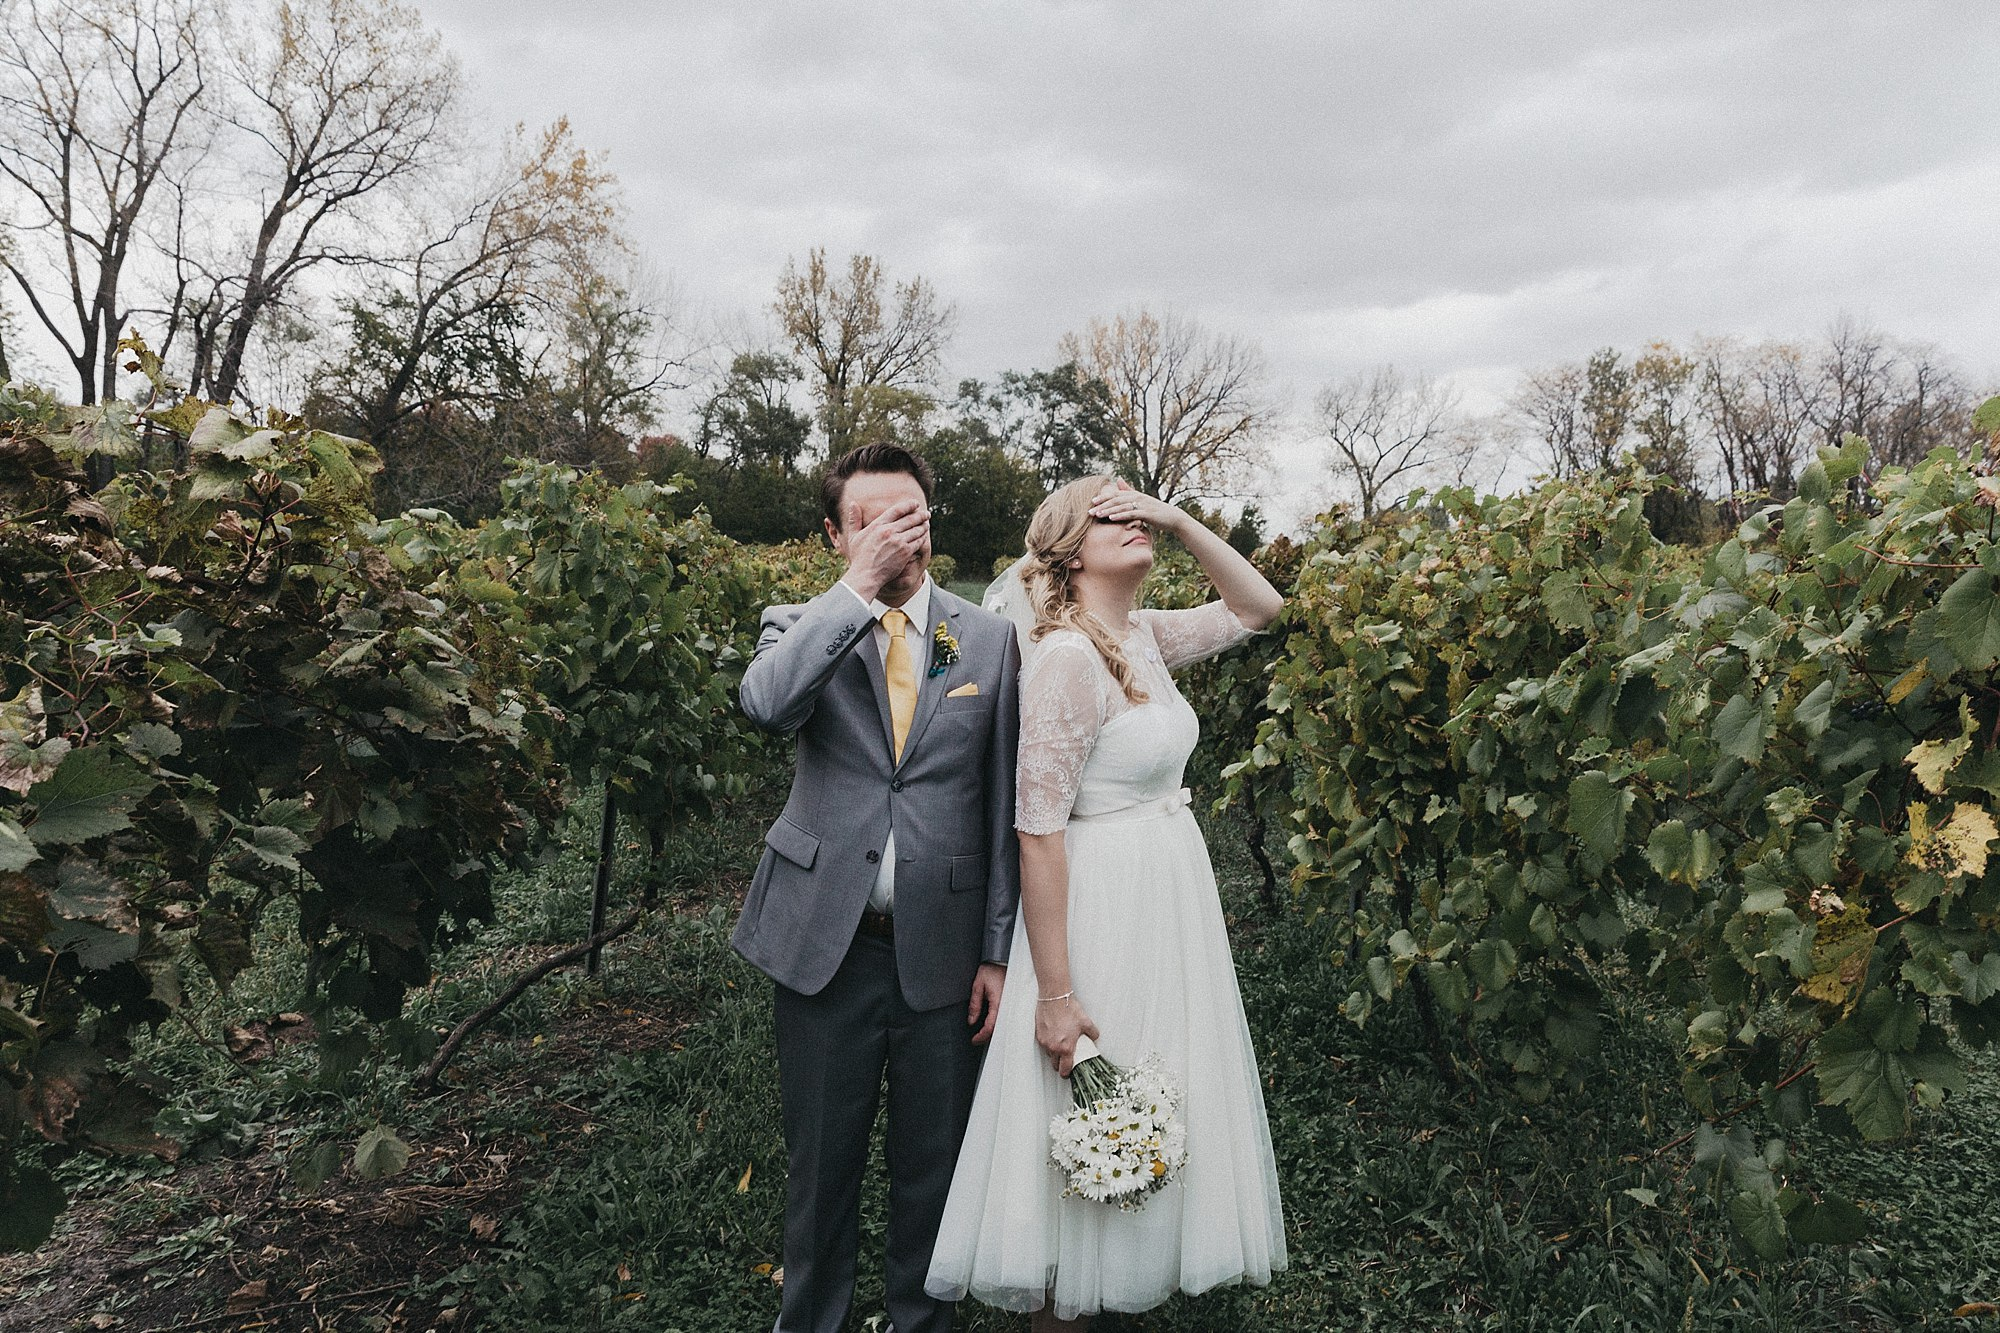 Mary and Benton's Beatles themed wedding in Des Moines